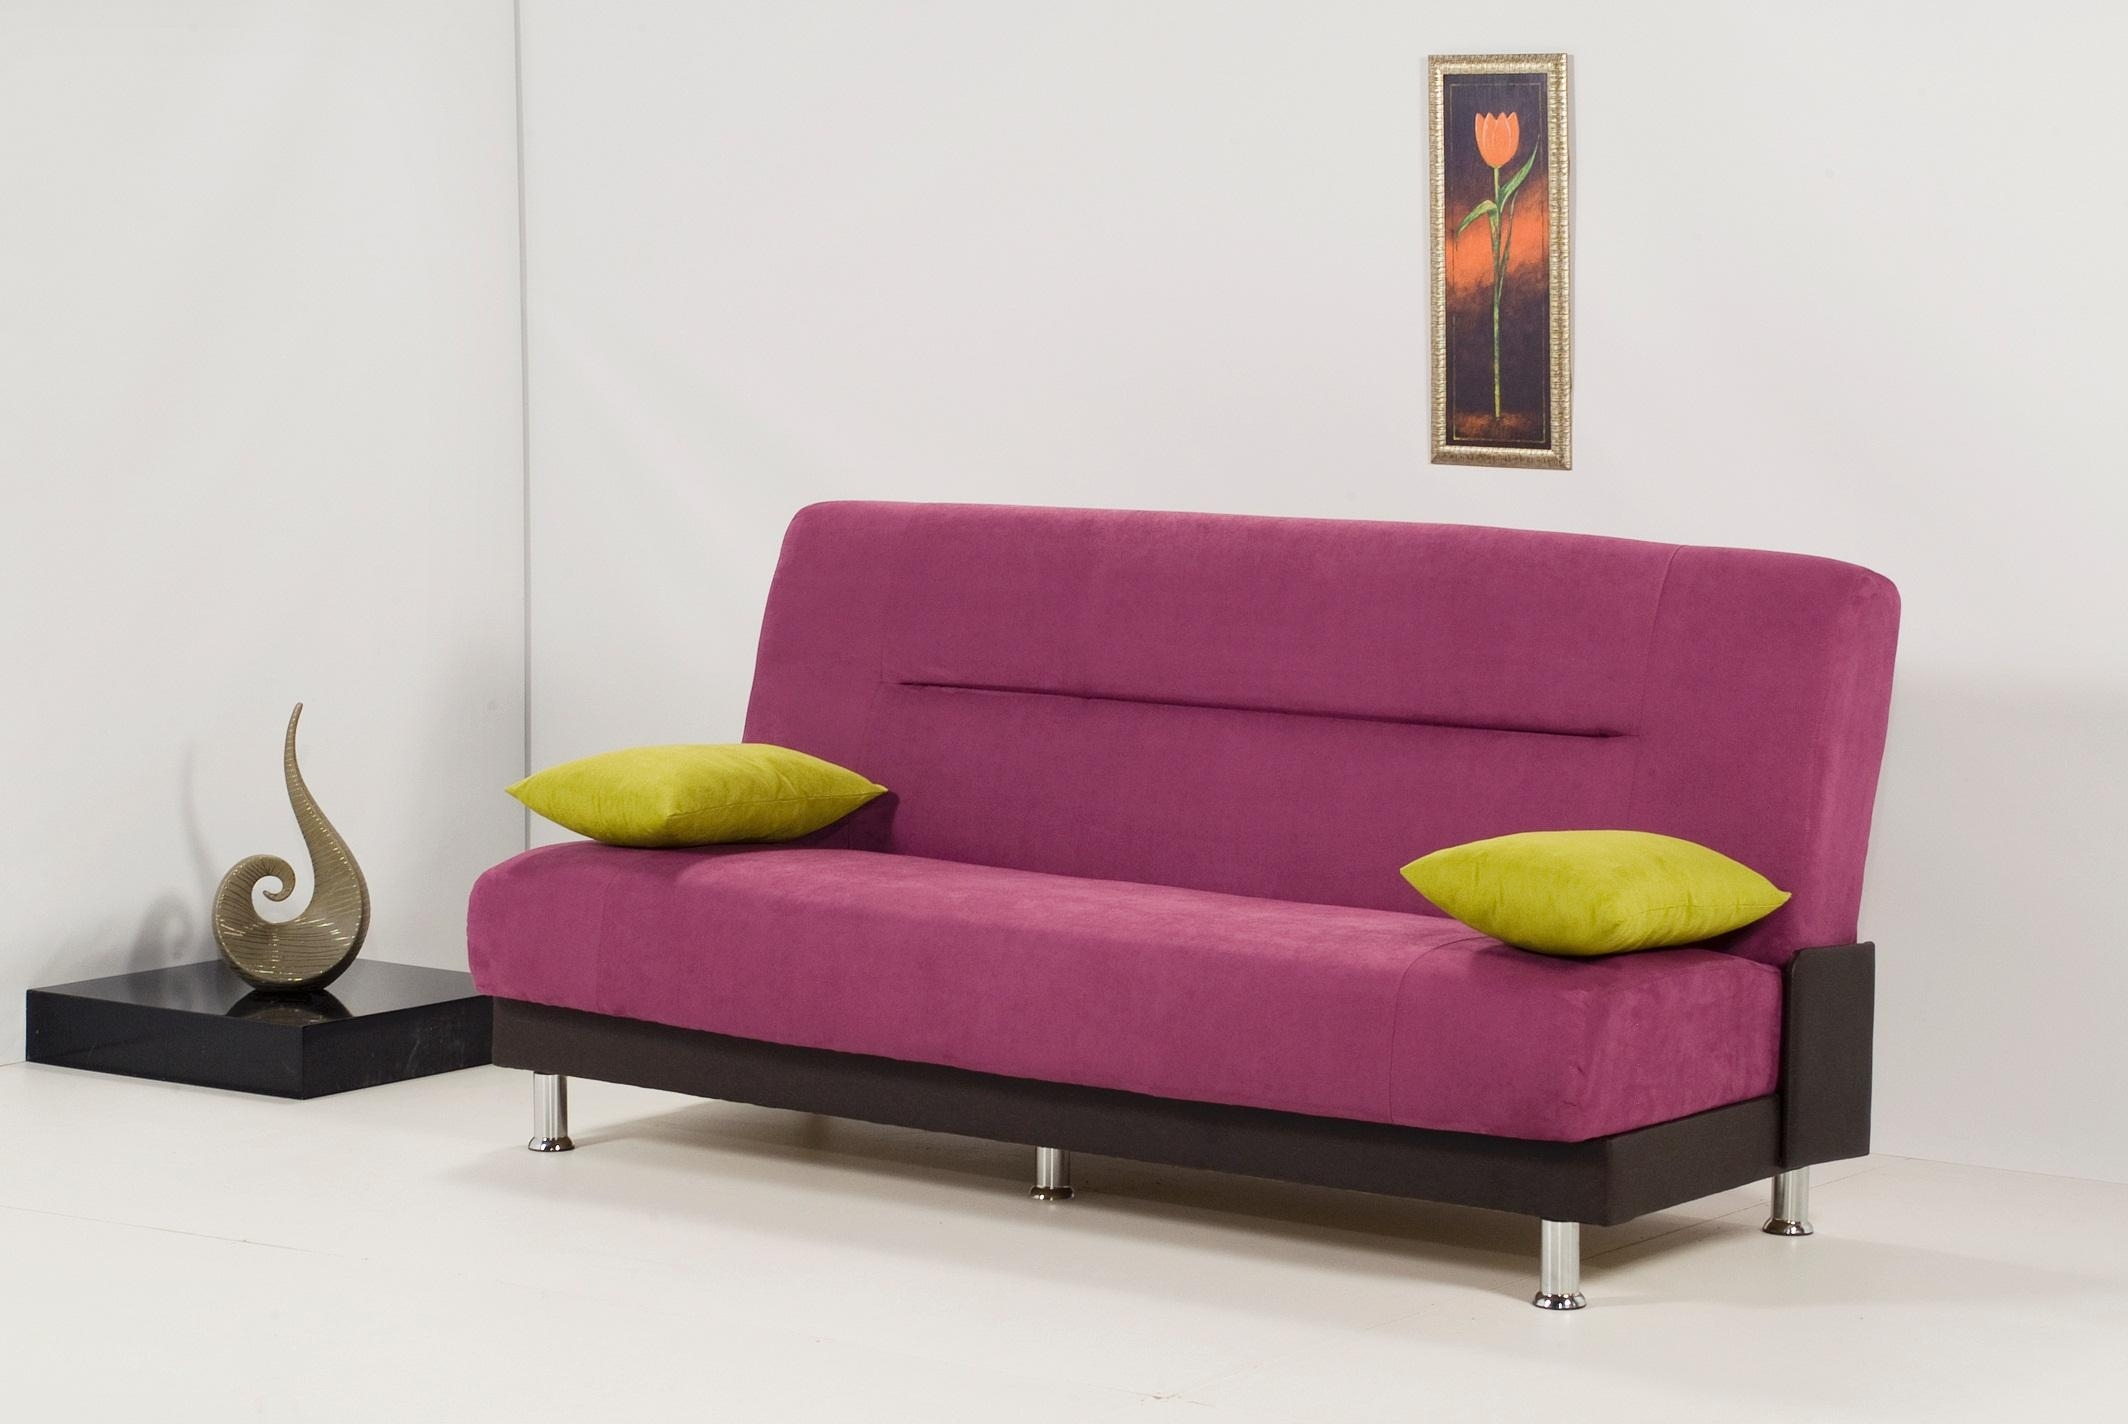 Carlyle Sofa With Ideas Gallery 27013 | Kengire With Carlyle Sofa Beds (View 4 of 20)